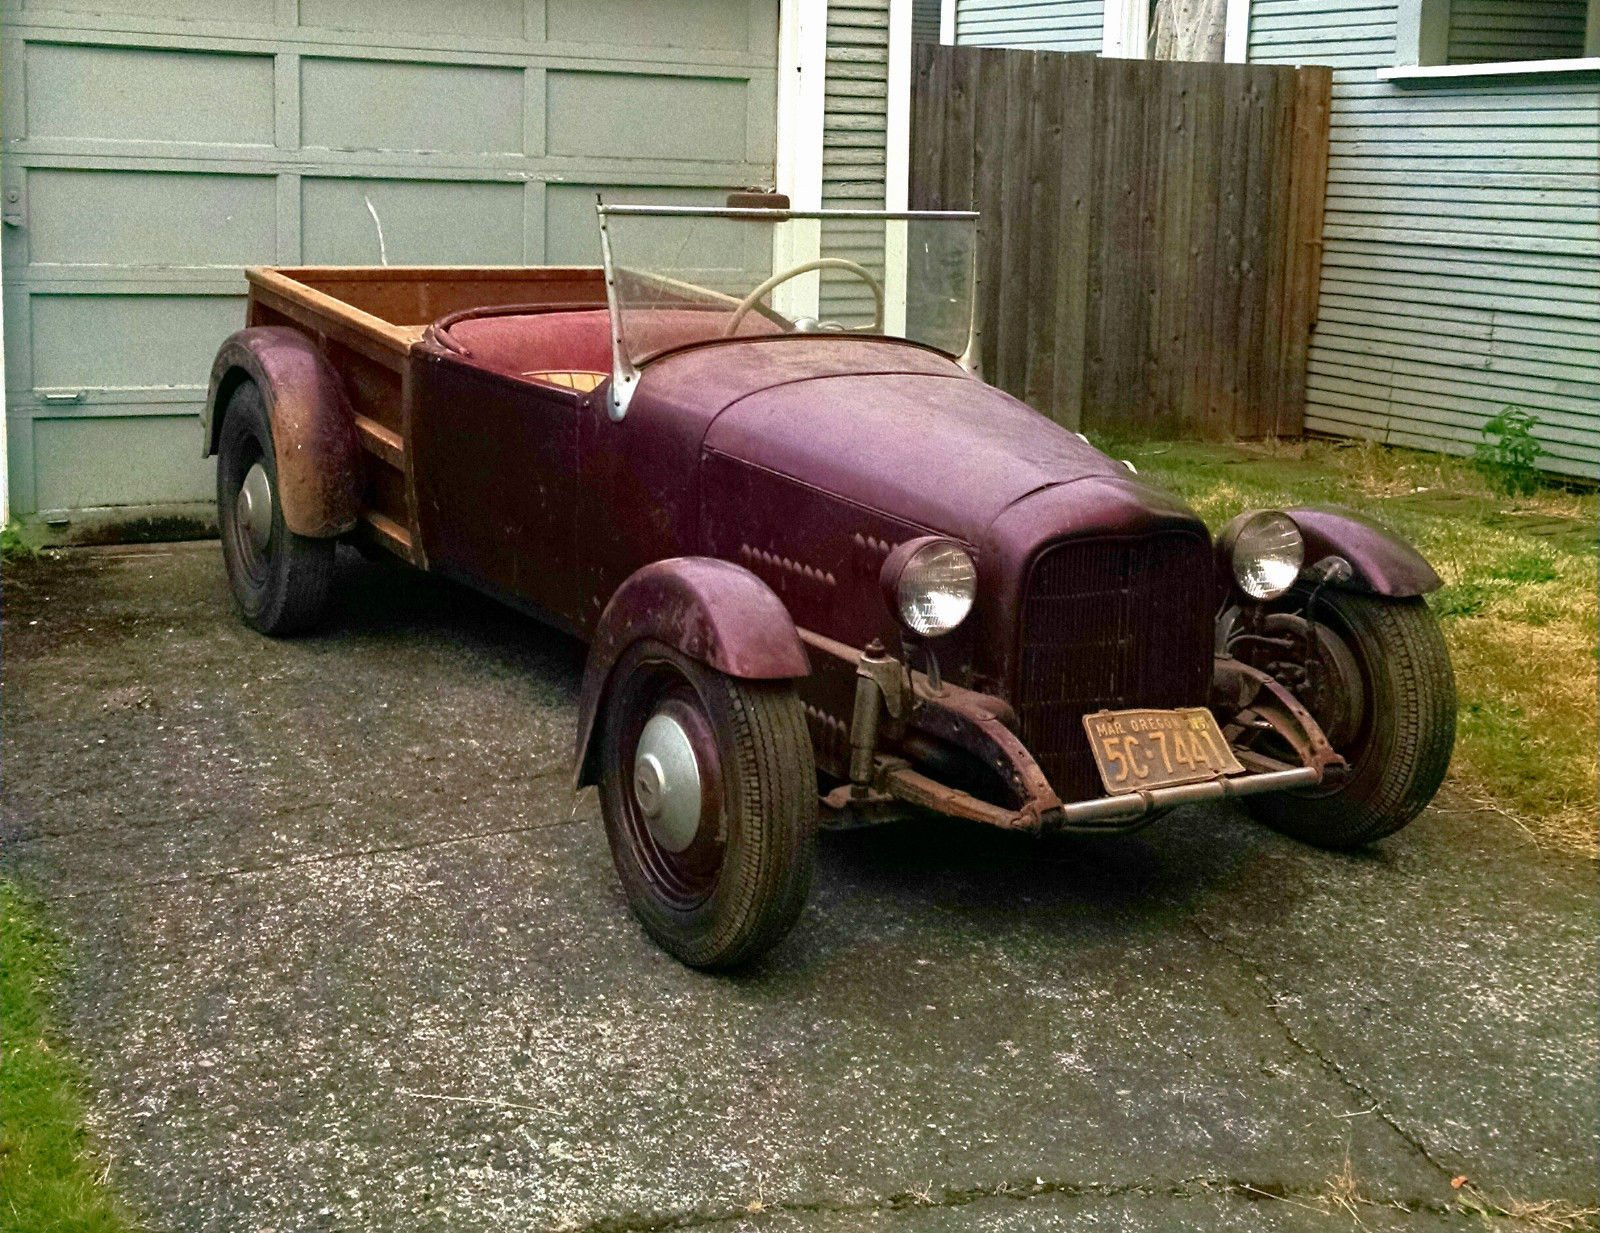 Old hot rod $125K - Lots to restore this car   The H.A.M.B.